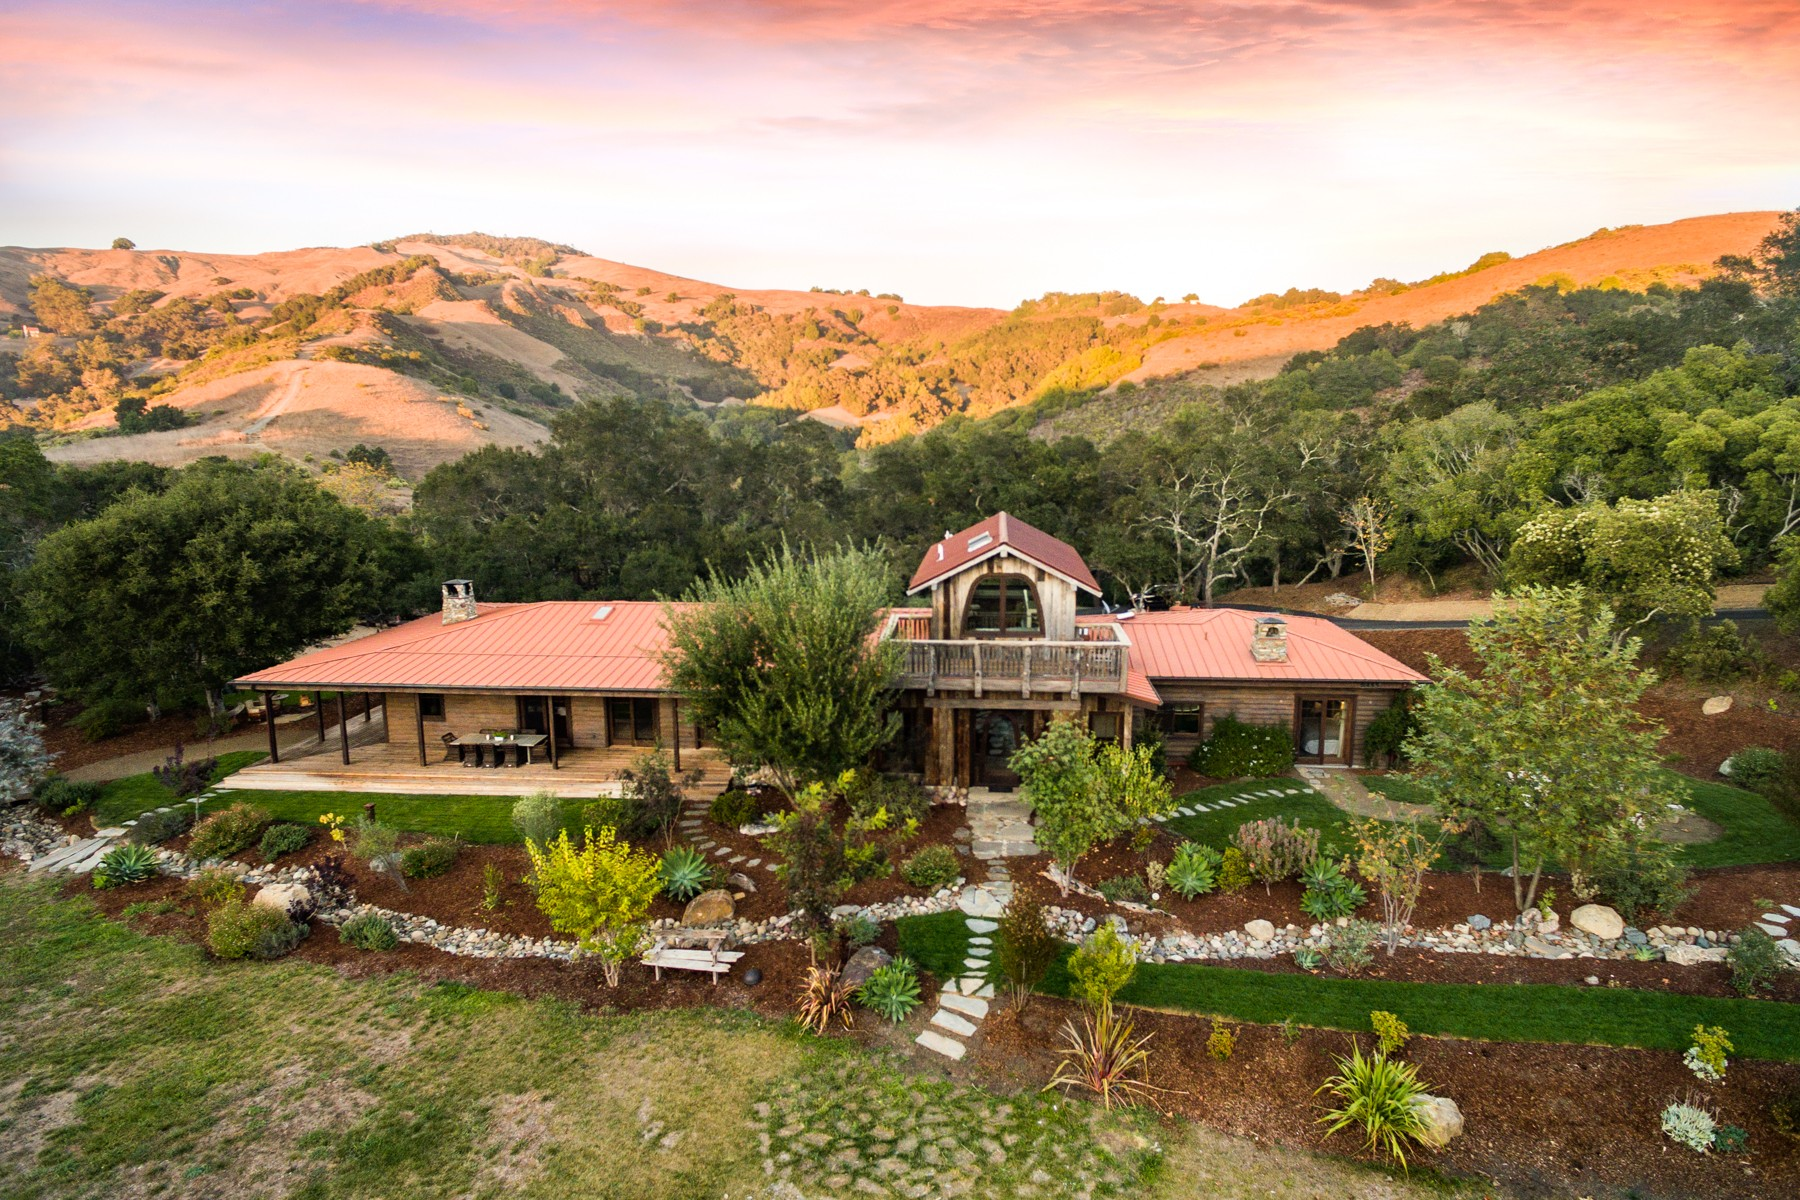 Single Family Homes for Sale at 8455 Red Mountain Rd Cambria, California 93428 United States